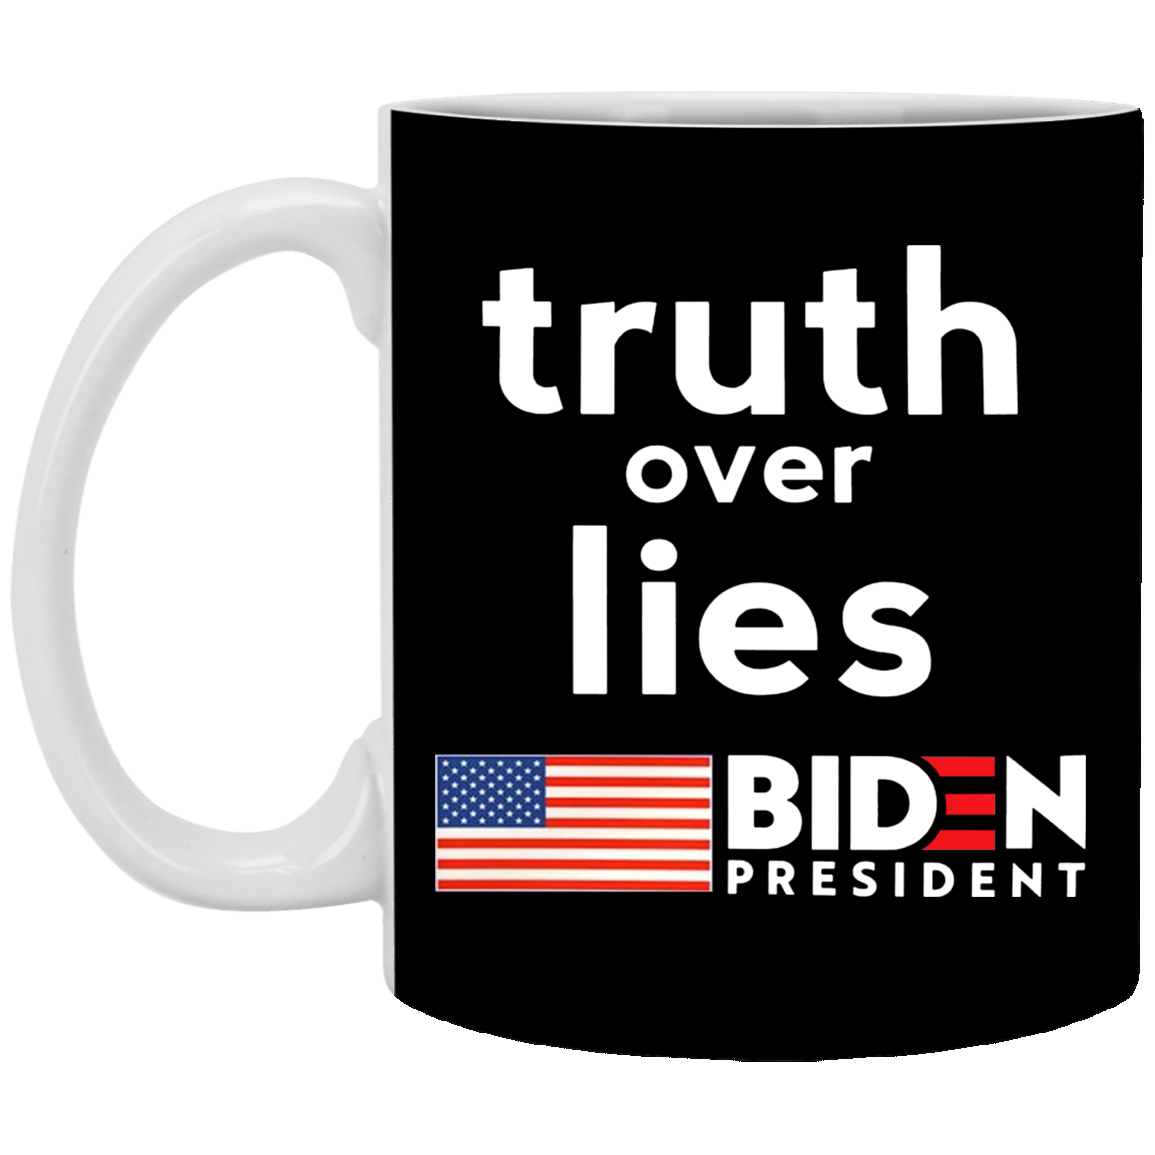 Truth Over Lies Biden President Mug Anti Trump Vote Pro Joe Biden Victory President Merch